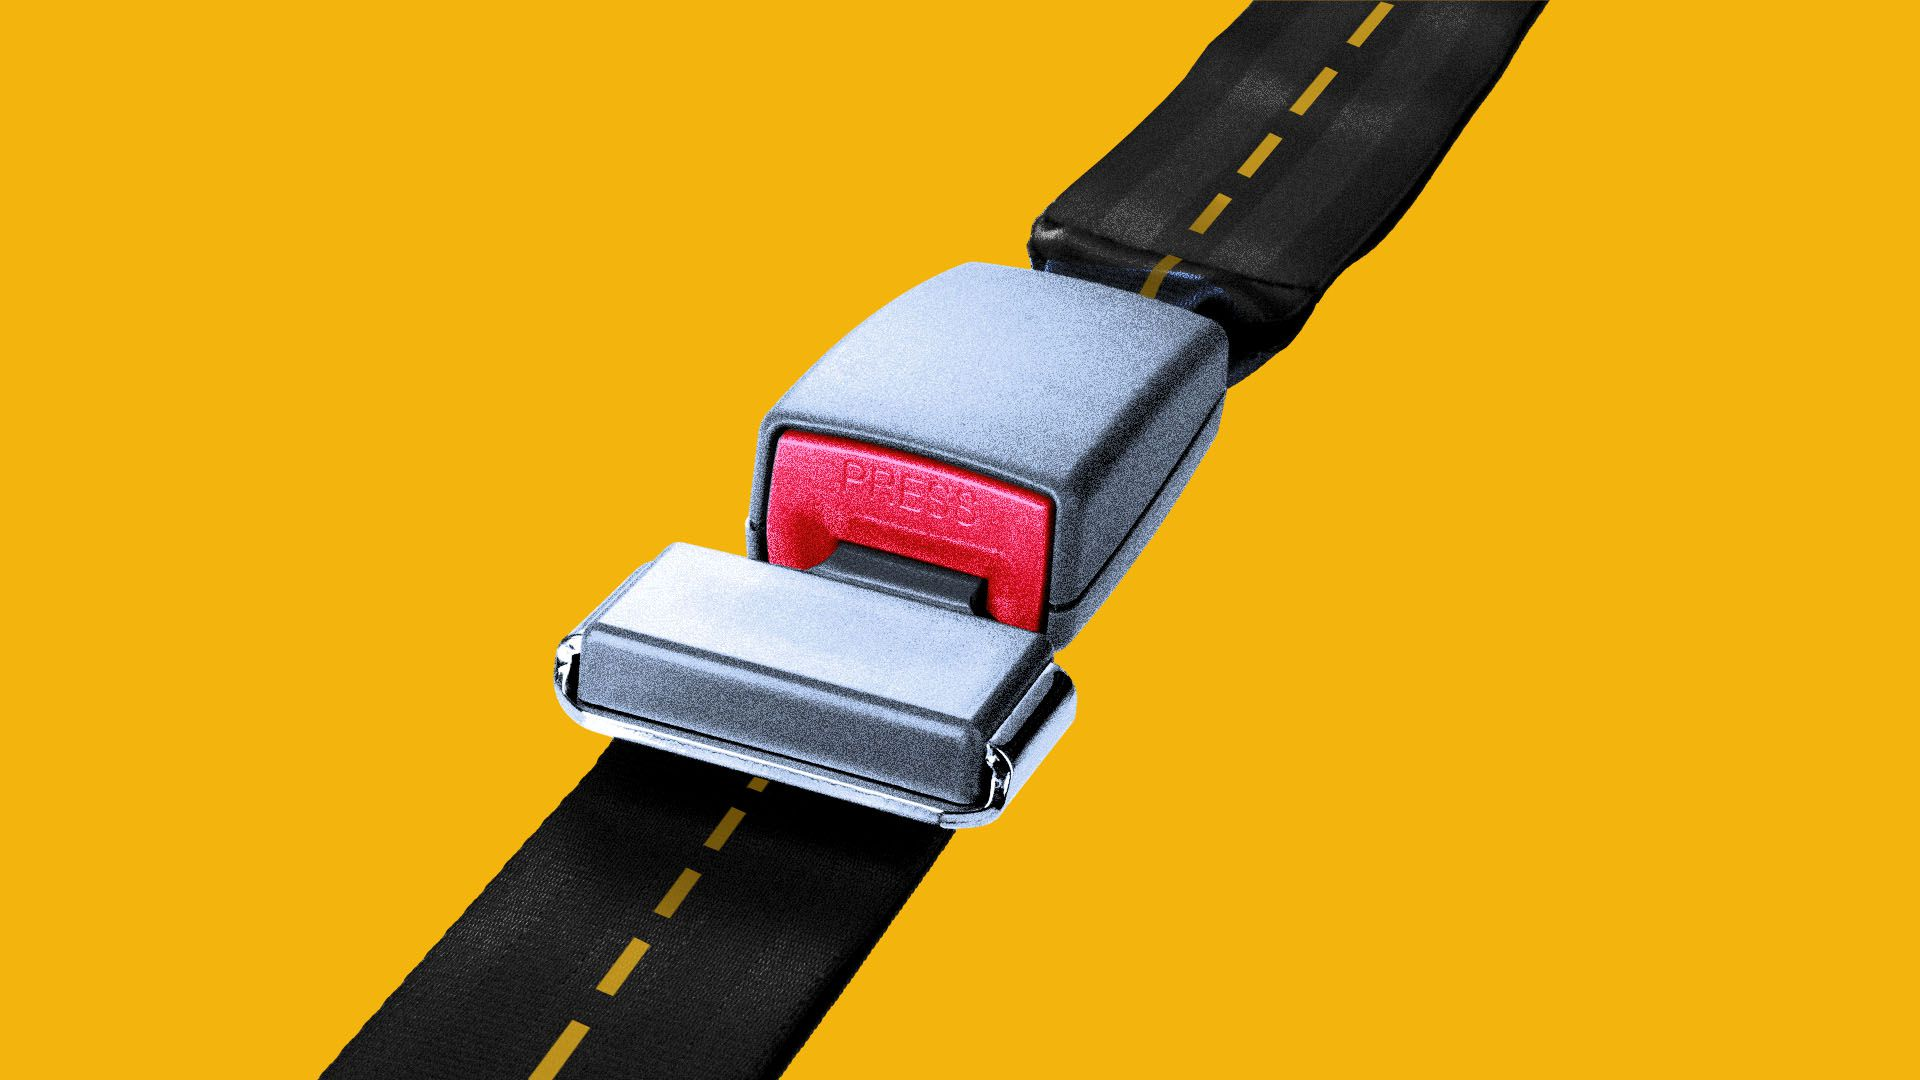 Illustration of a seat belt with a yellow road markings